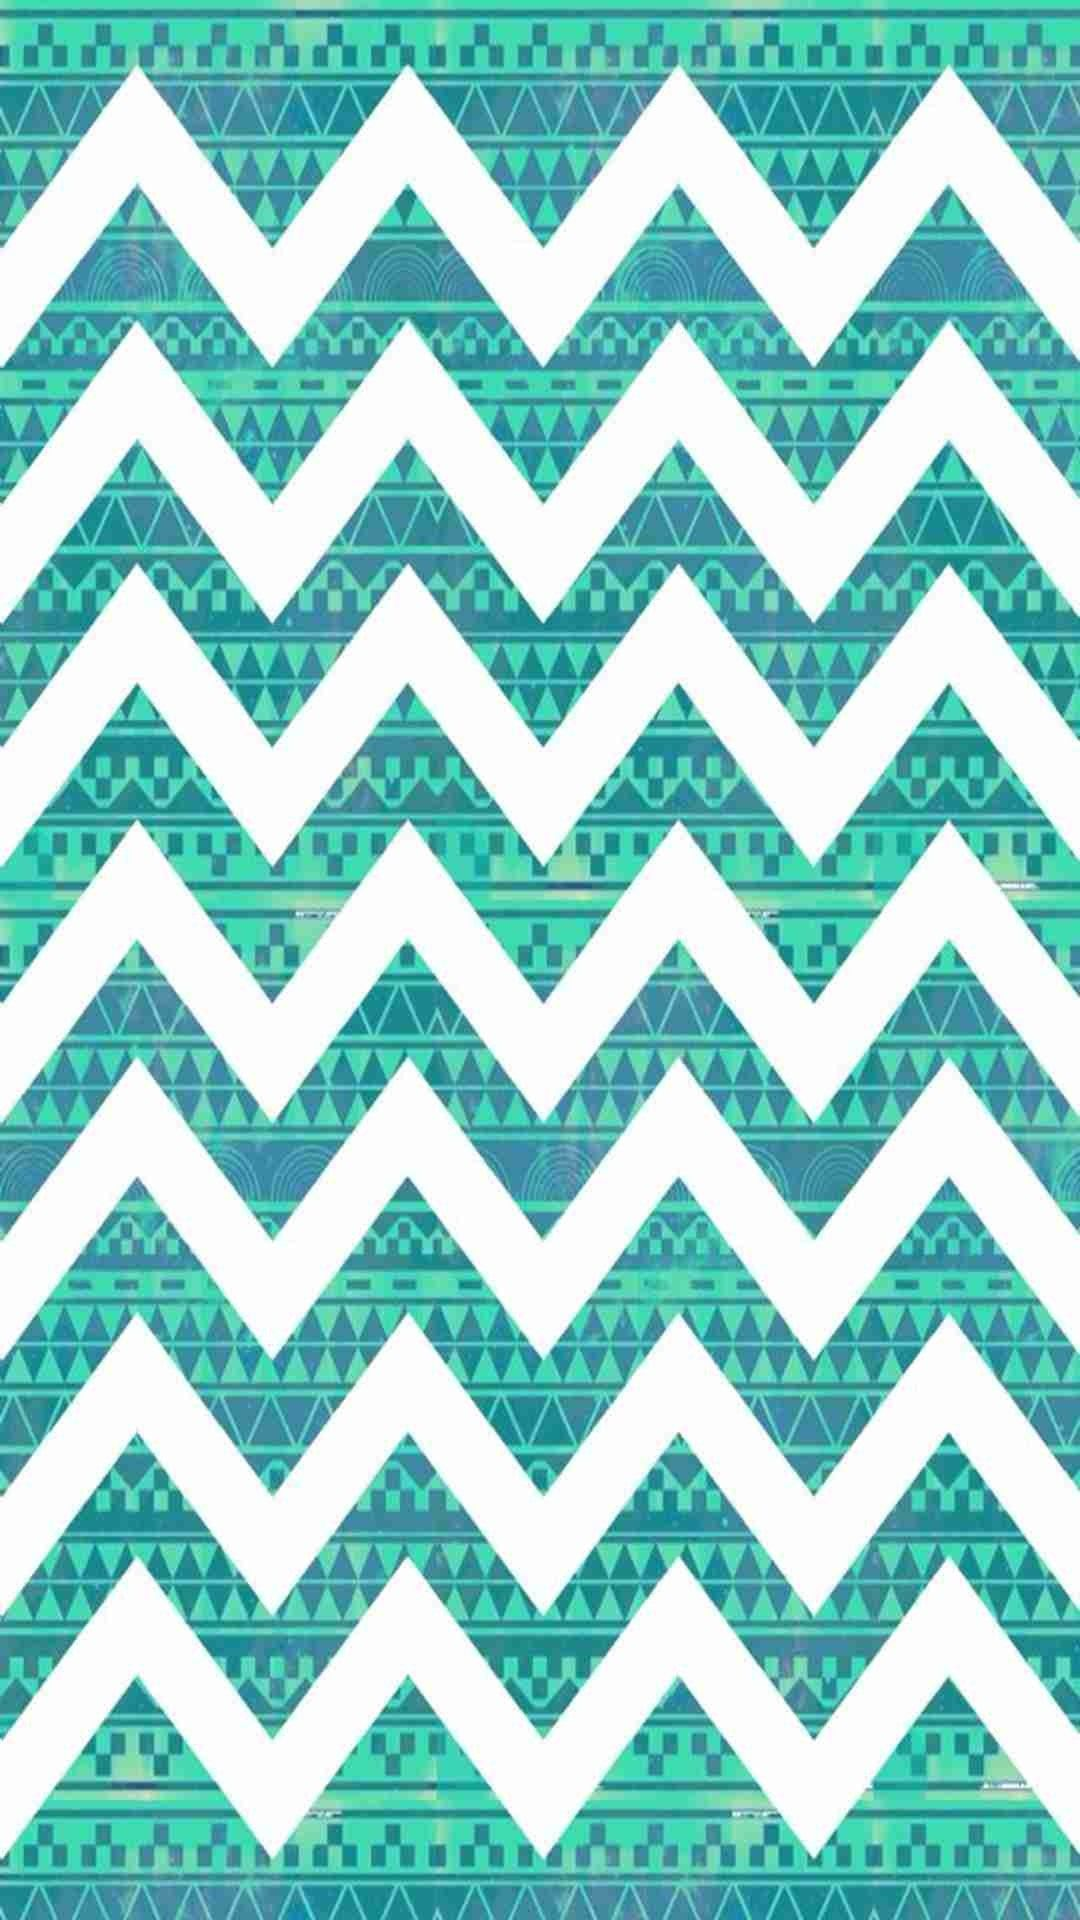 Chevron print background - Tribal Print Turquoise Blue Chevron Iphone 6 Plus Wallpaper Zigzag Print Pattern